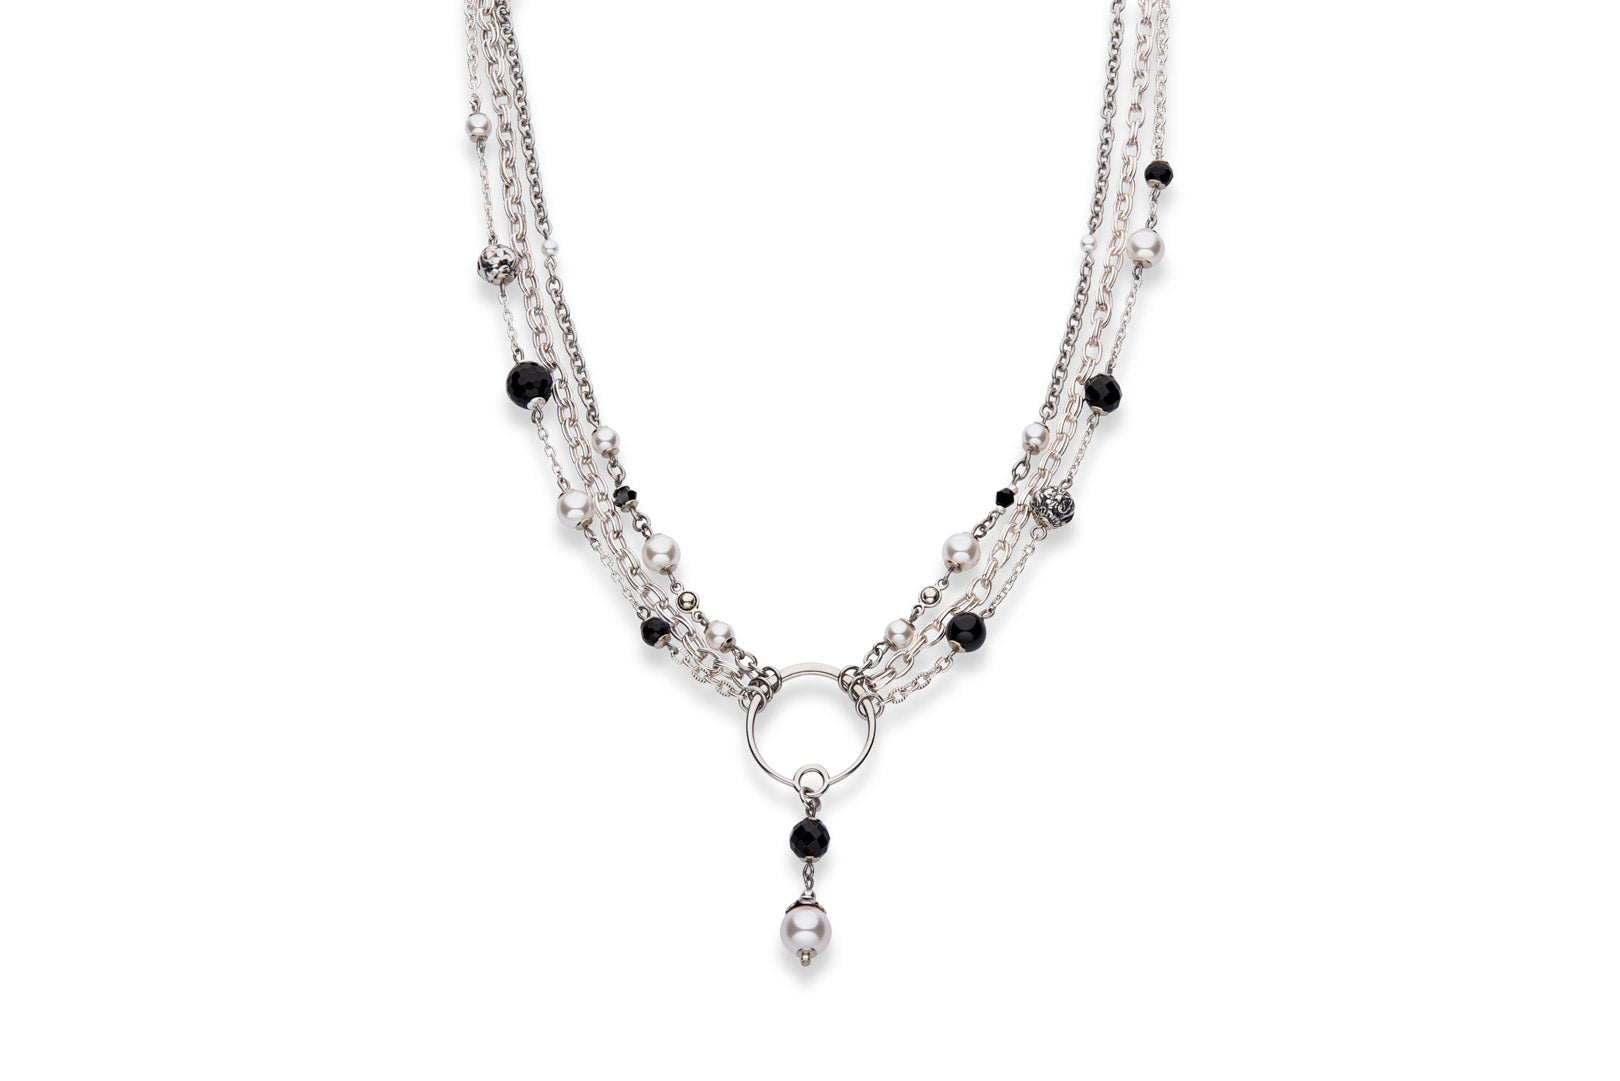 Silver, onyx and Swarovski crystal pearl statement necklace